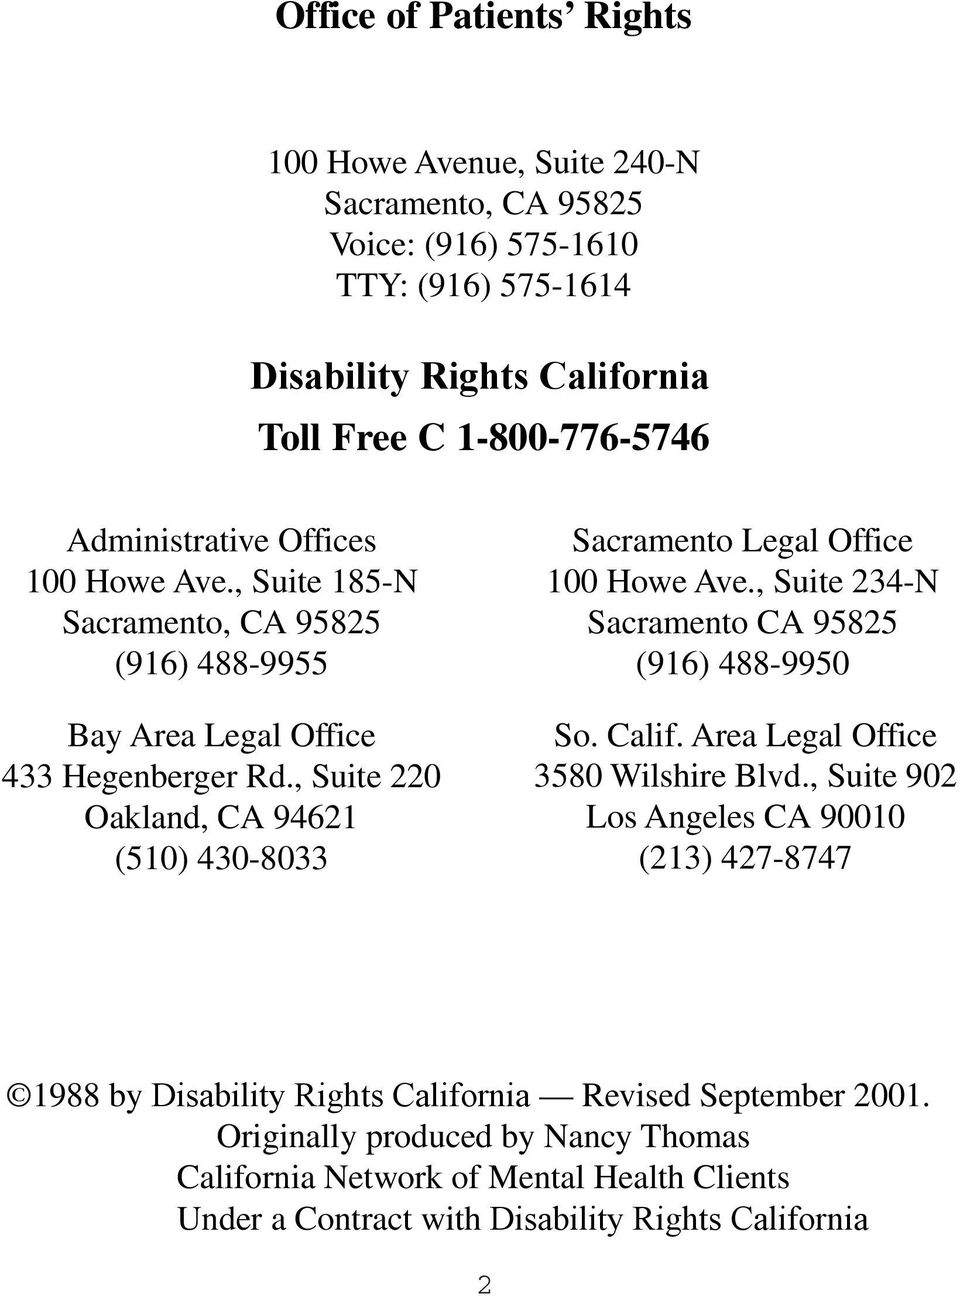 , Suite 220 Oakland, CA 94621 (510) 430-8033 Sacramento Legal Office 100 Howe Ave., Suite 234-N Sacramento CA 95825 (916) 488-9950 So. Calif. Area Legal Office 3580 Wilshire Blvd.